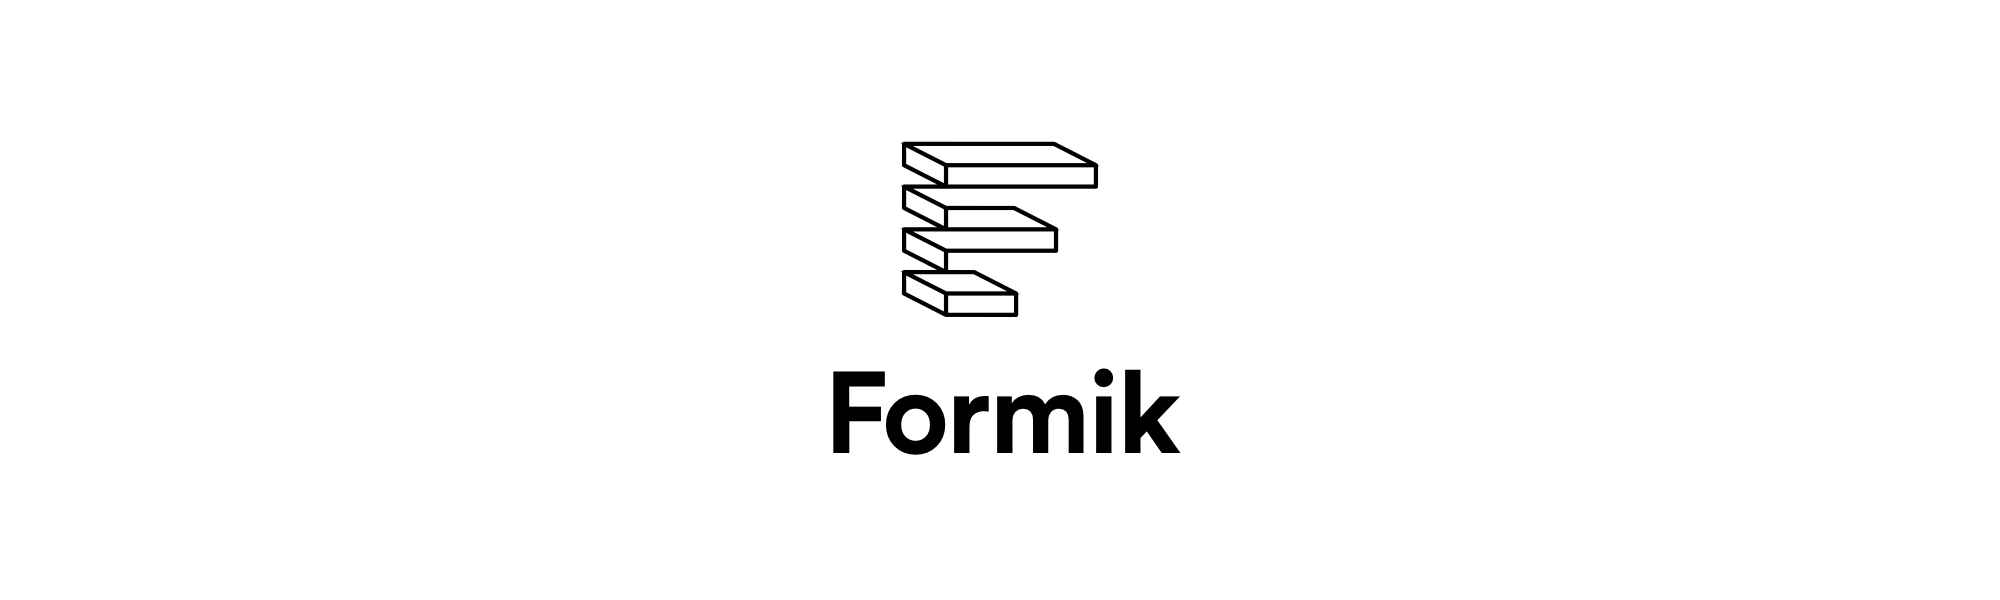 Formik — Handling files and reCaptcha - By